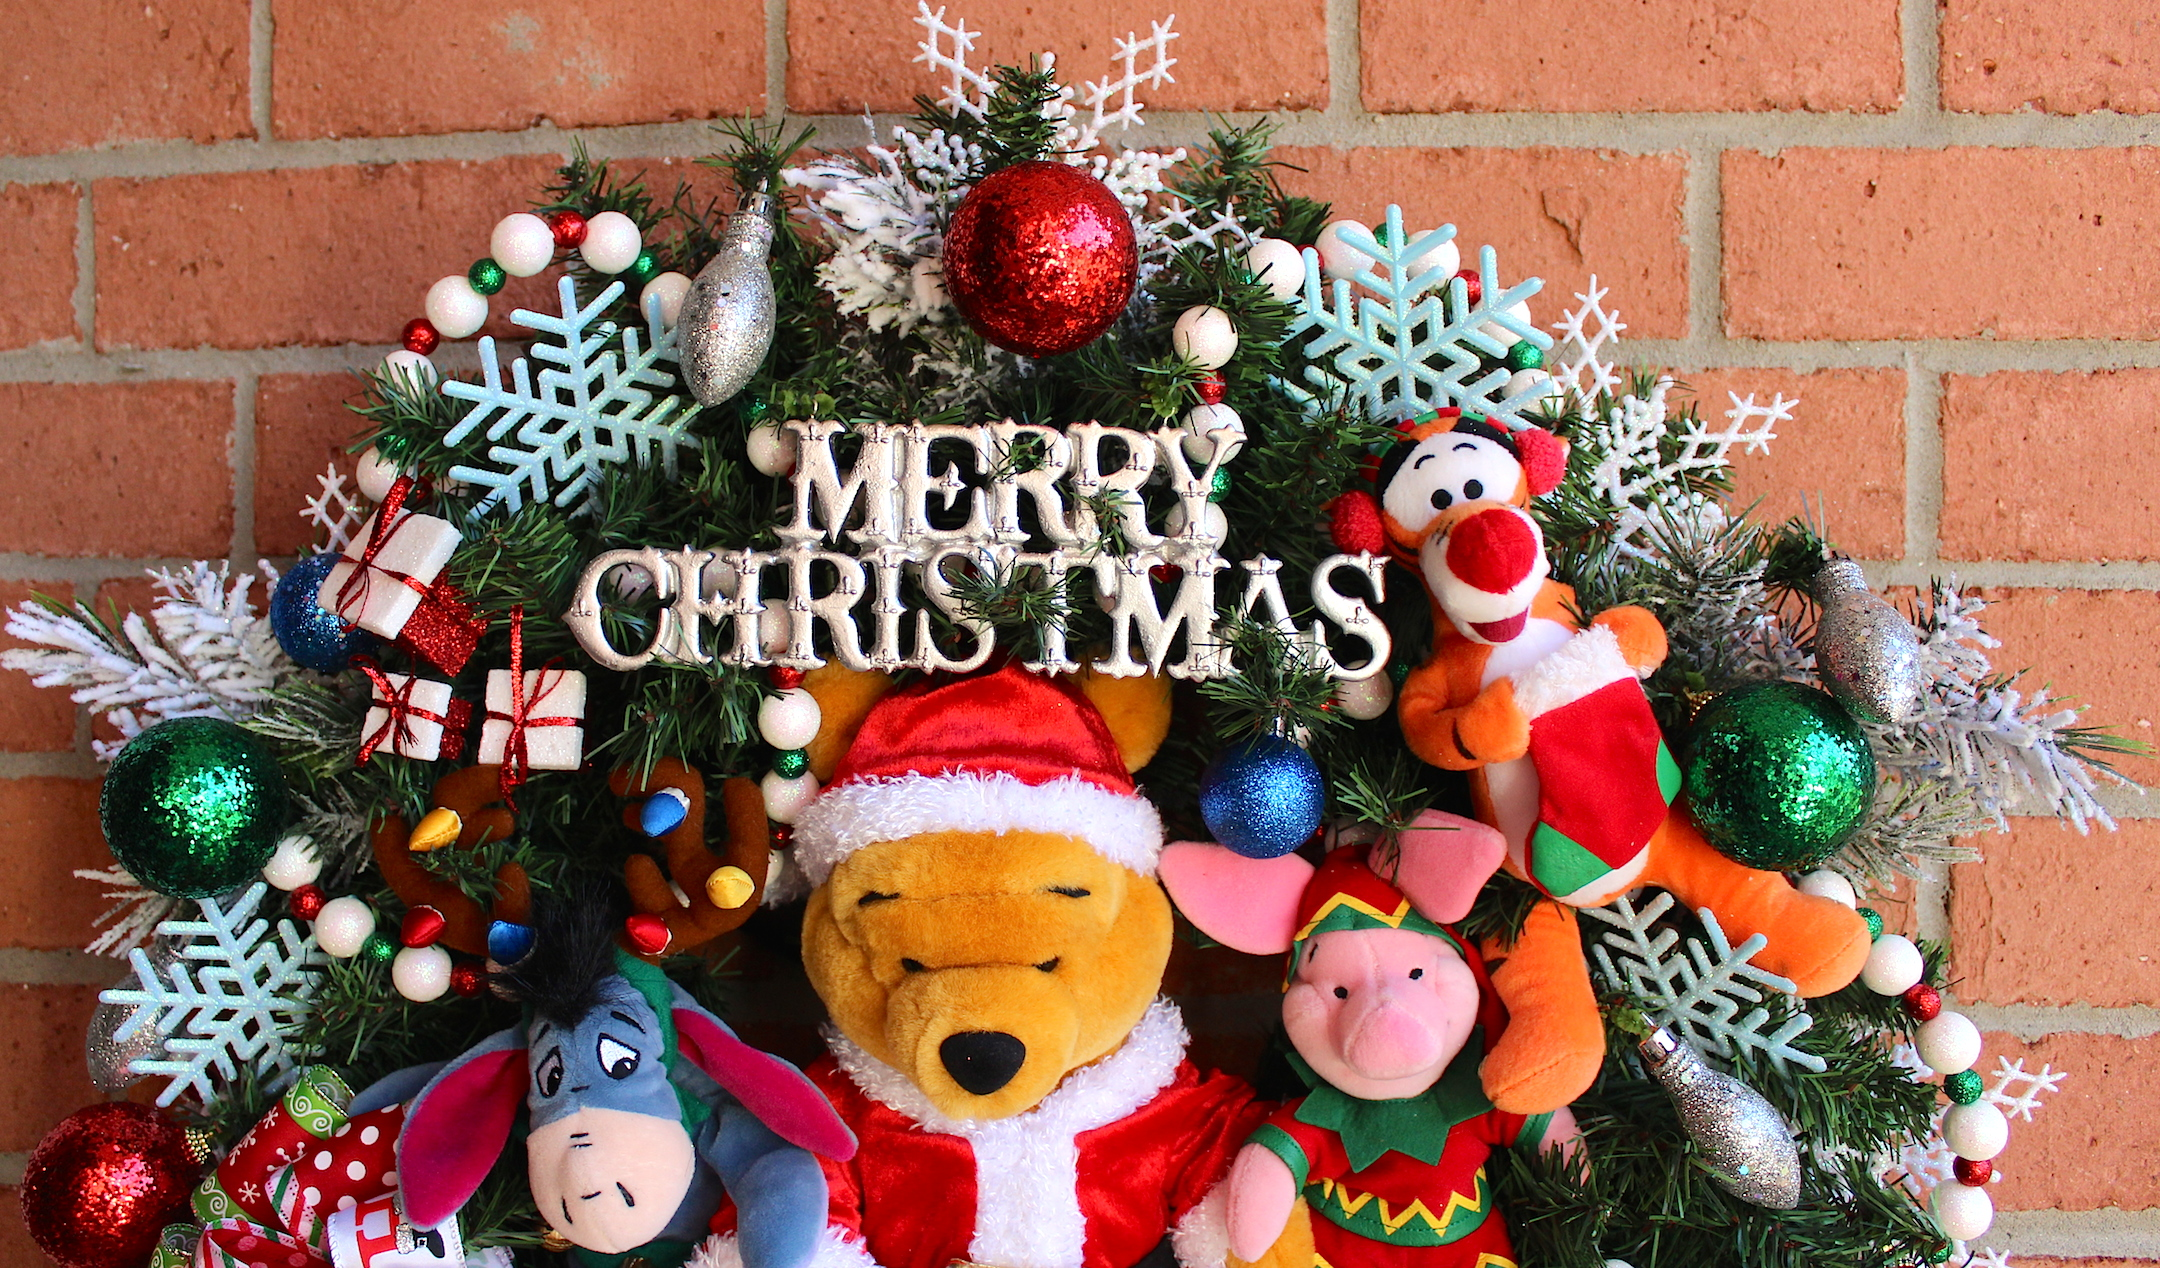 merry christmas winnie the pooh bigking keywords and pictures